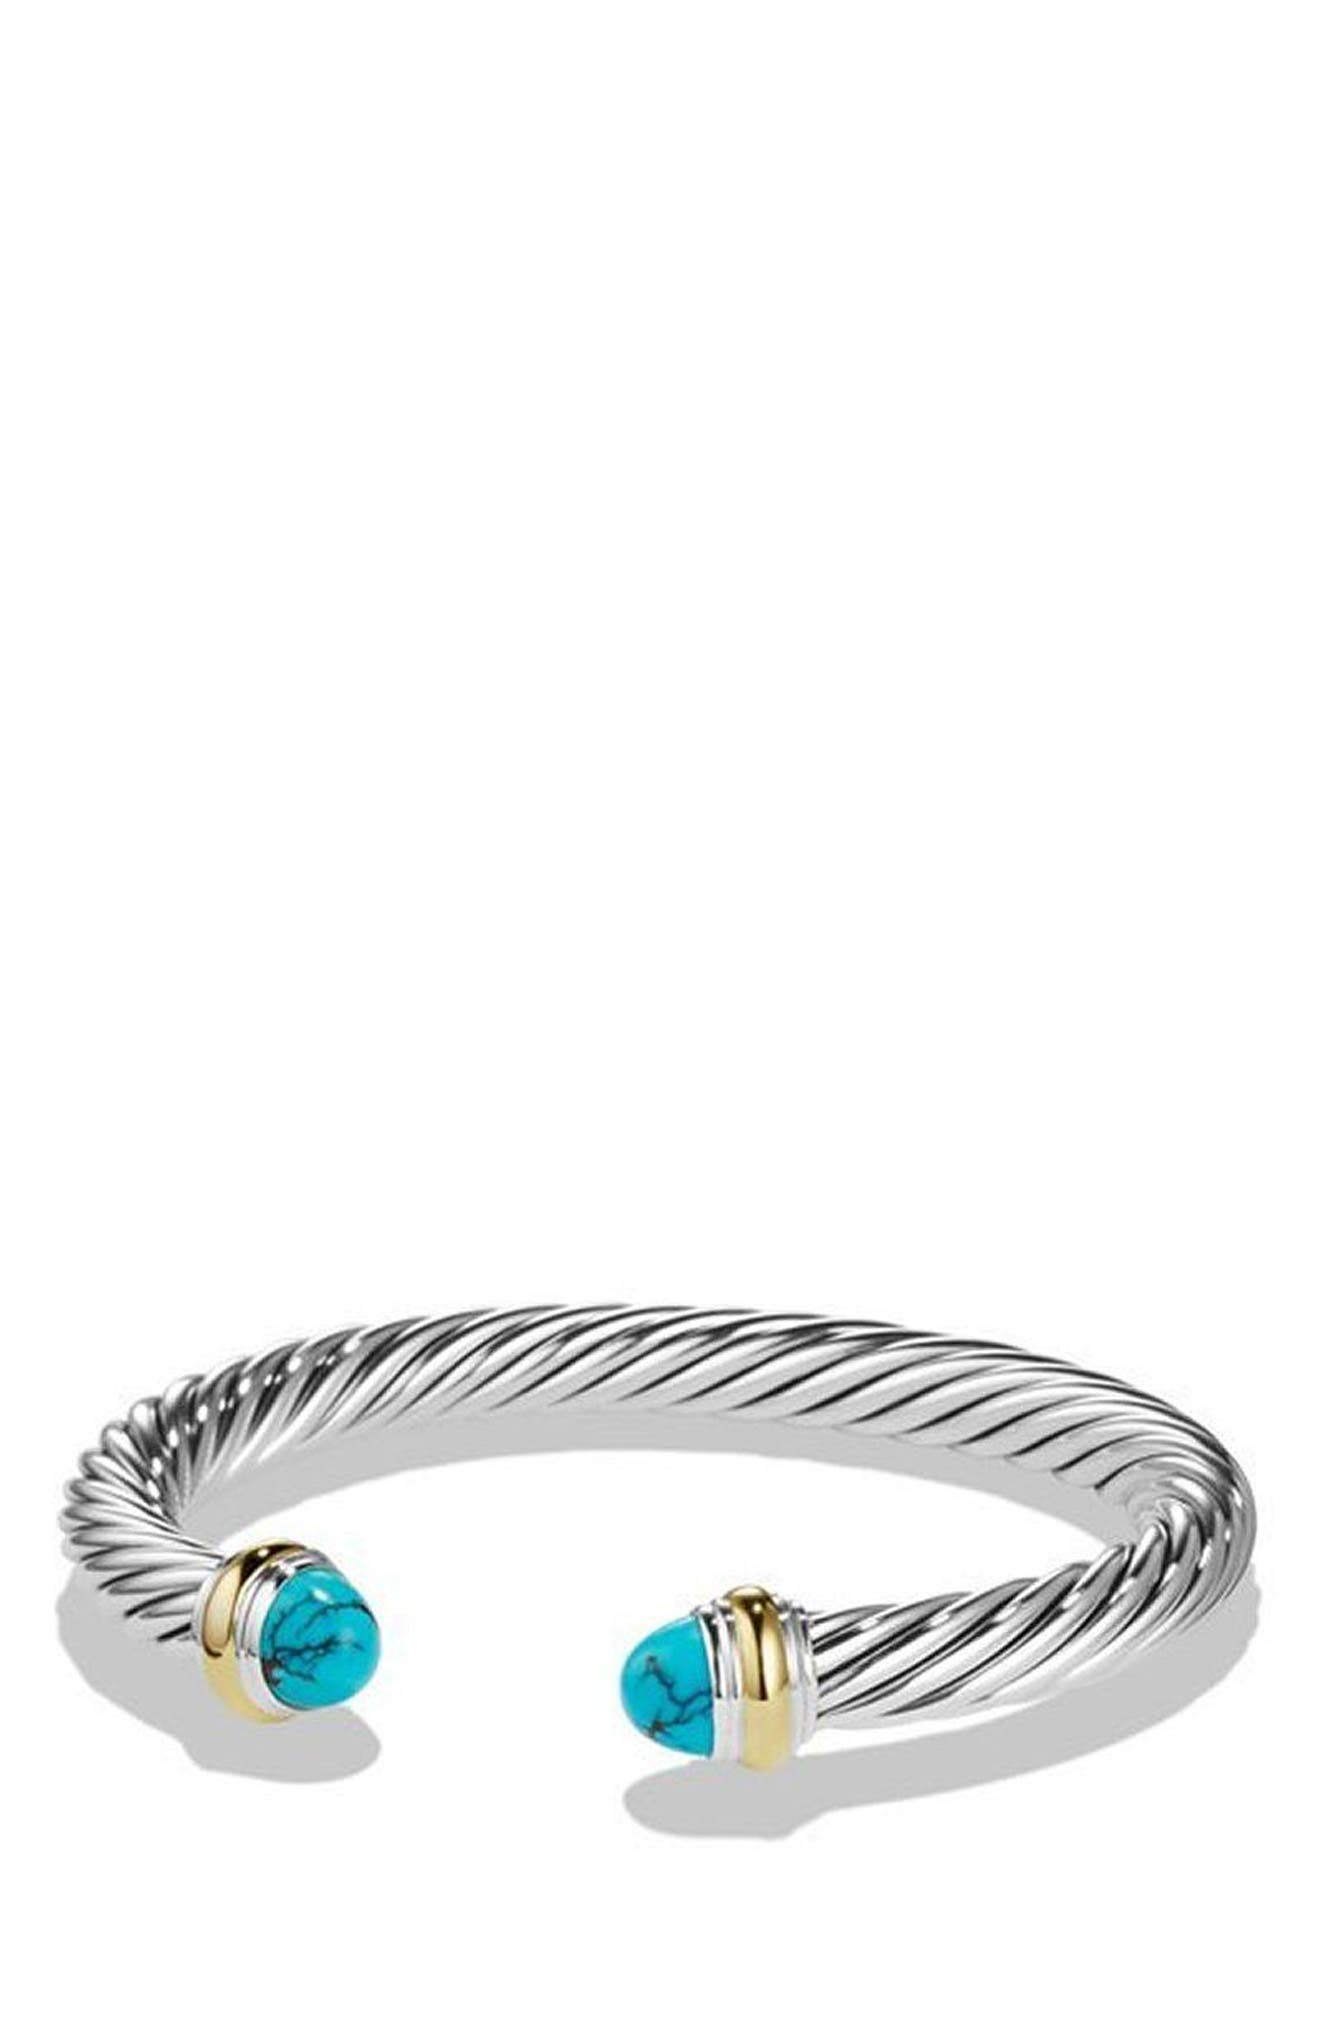 David Yurman Cable Classic Bracelet with Turquoise and 14K Gold, 5mm